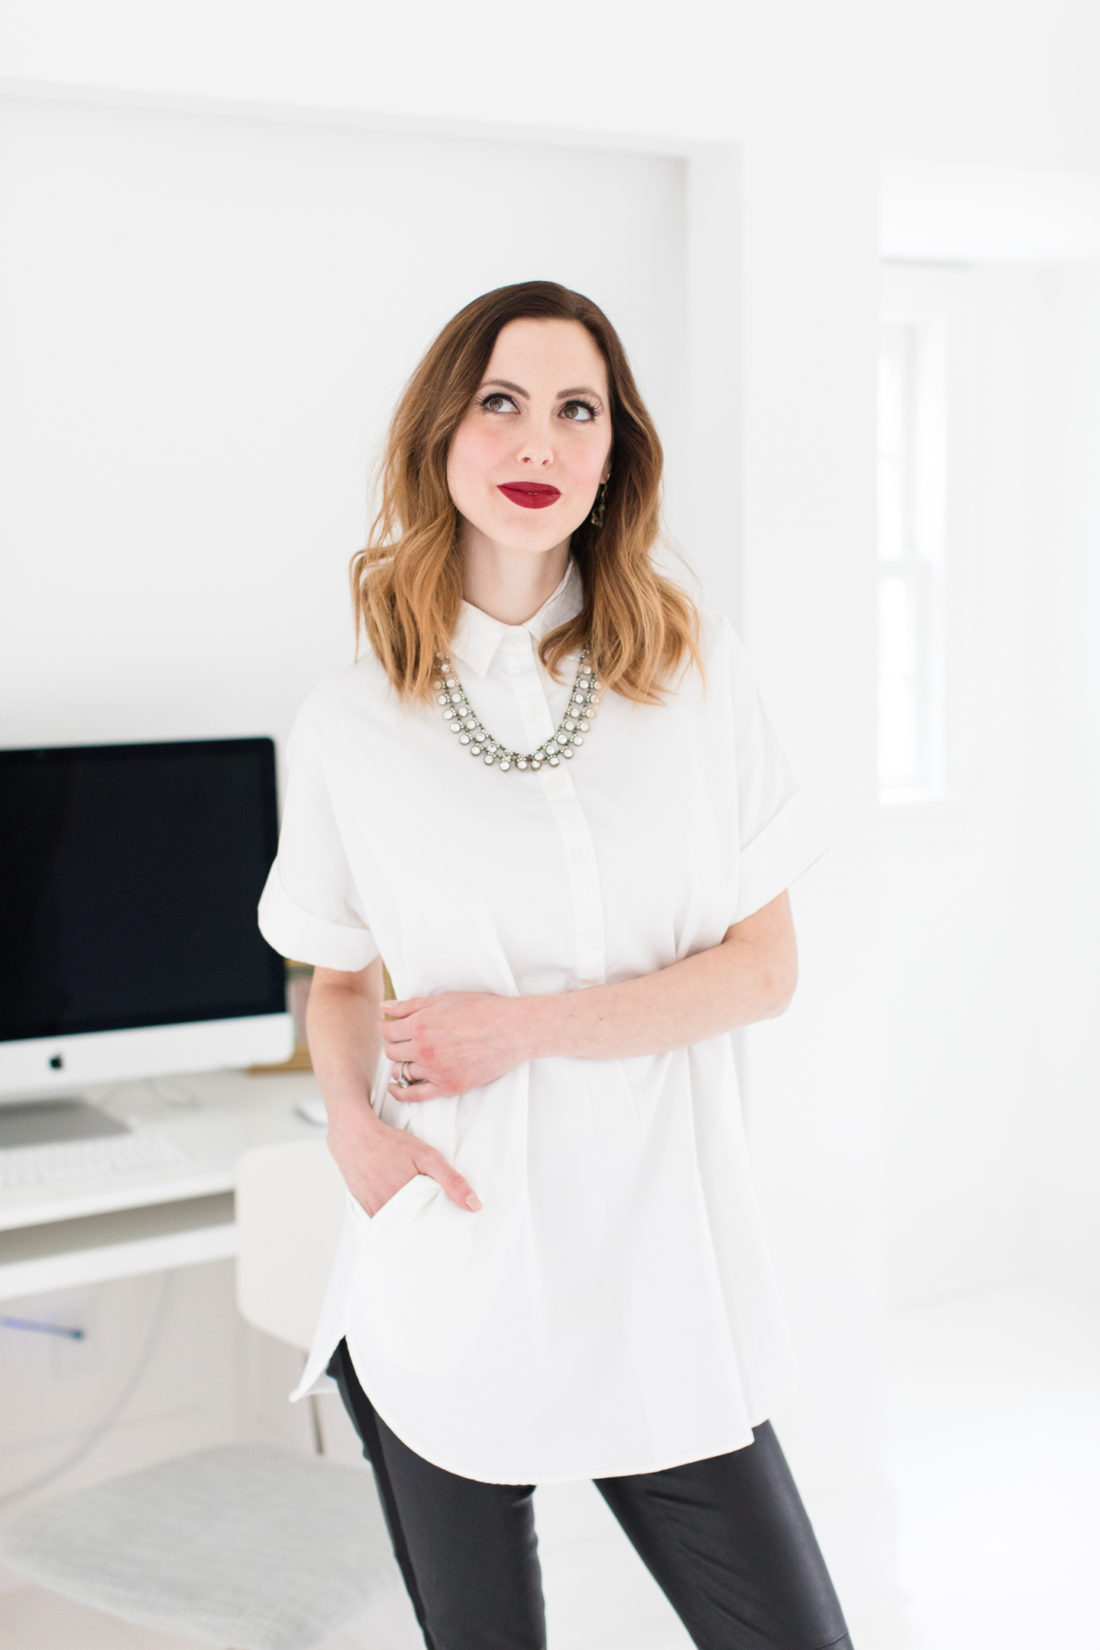 Eva Amurri Martino models a postpartum style guide look in her office in Connecticut